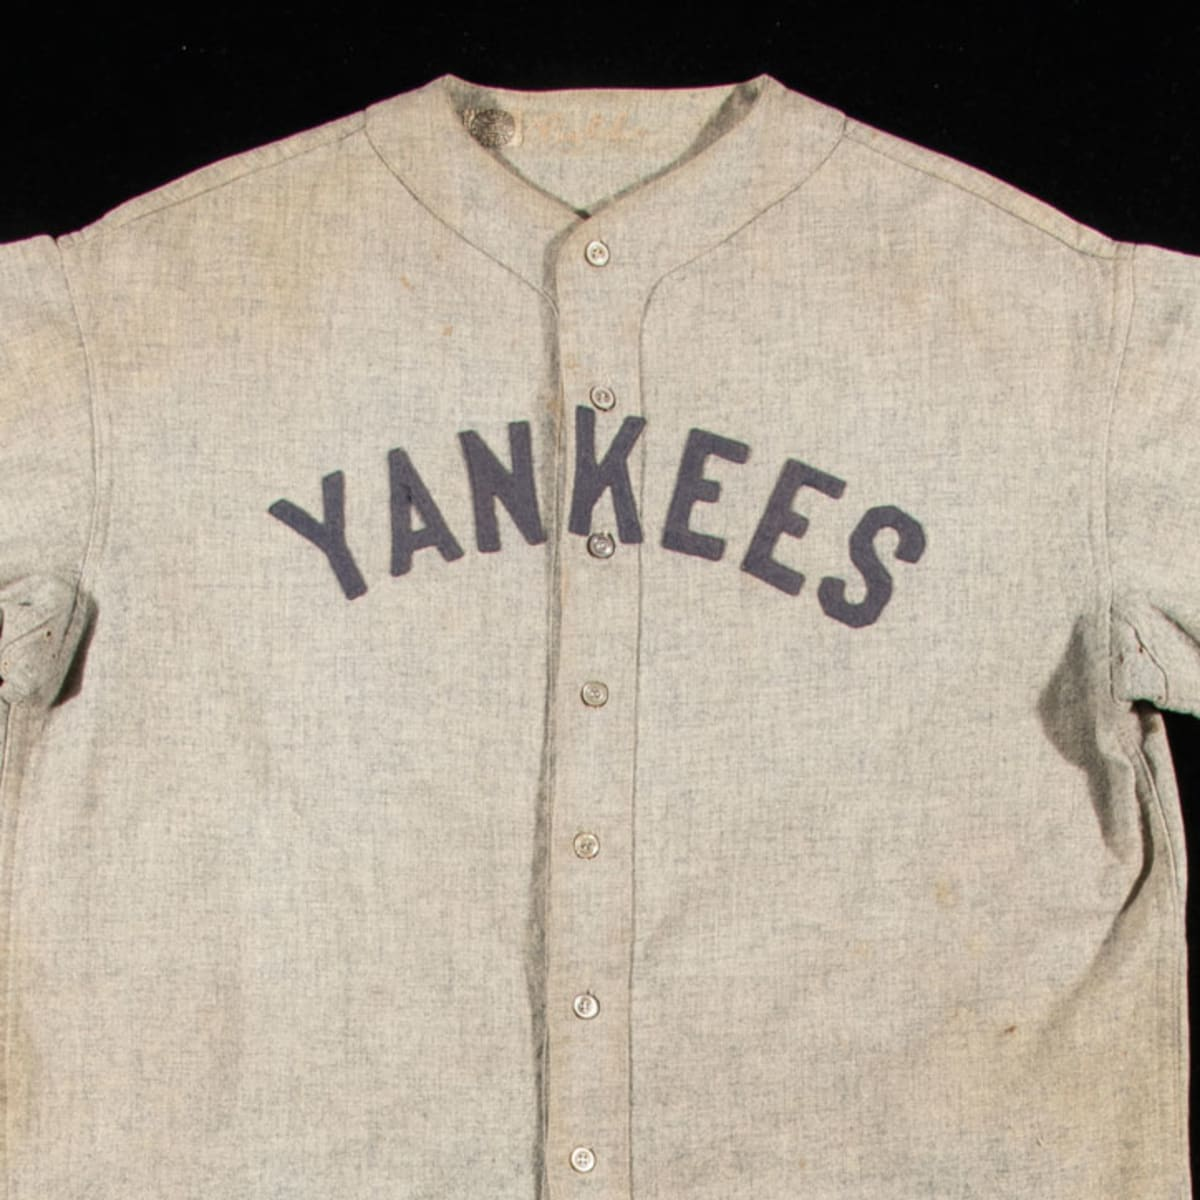 Babe Ruth jersey expected to sell at